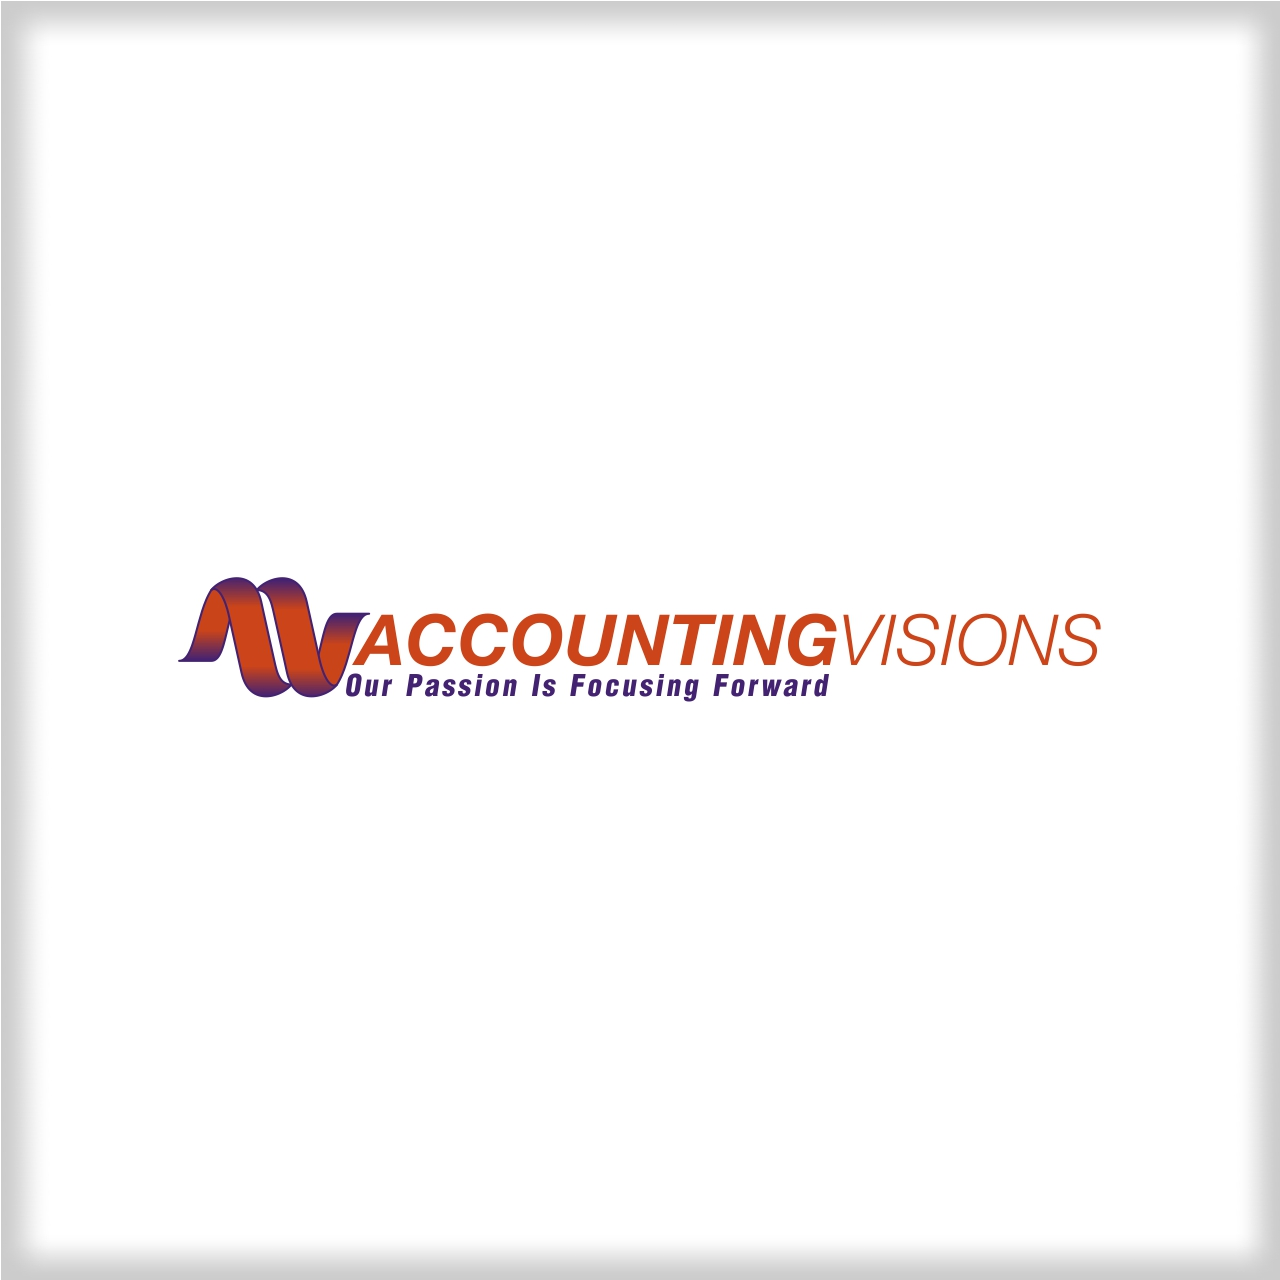 Logo Design by martinz - Entry No. 36 in the Logo Design Contest Accounting Visions.